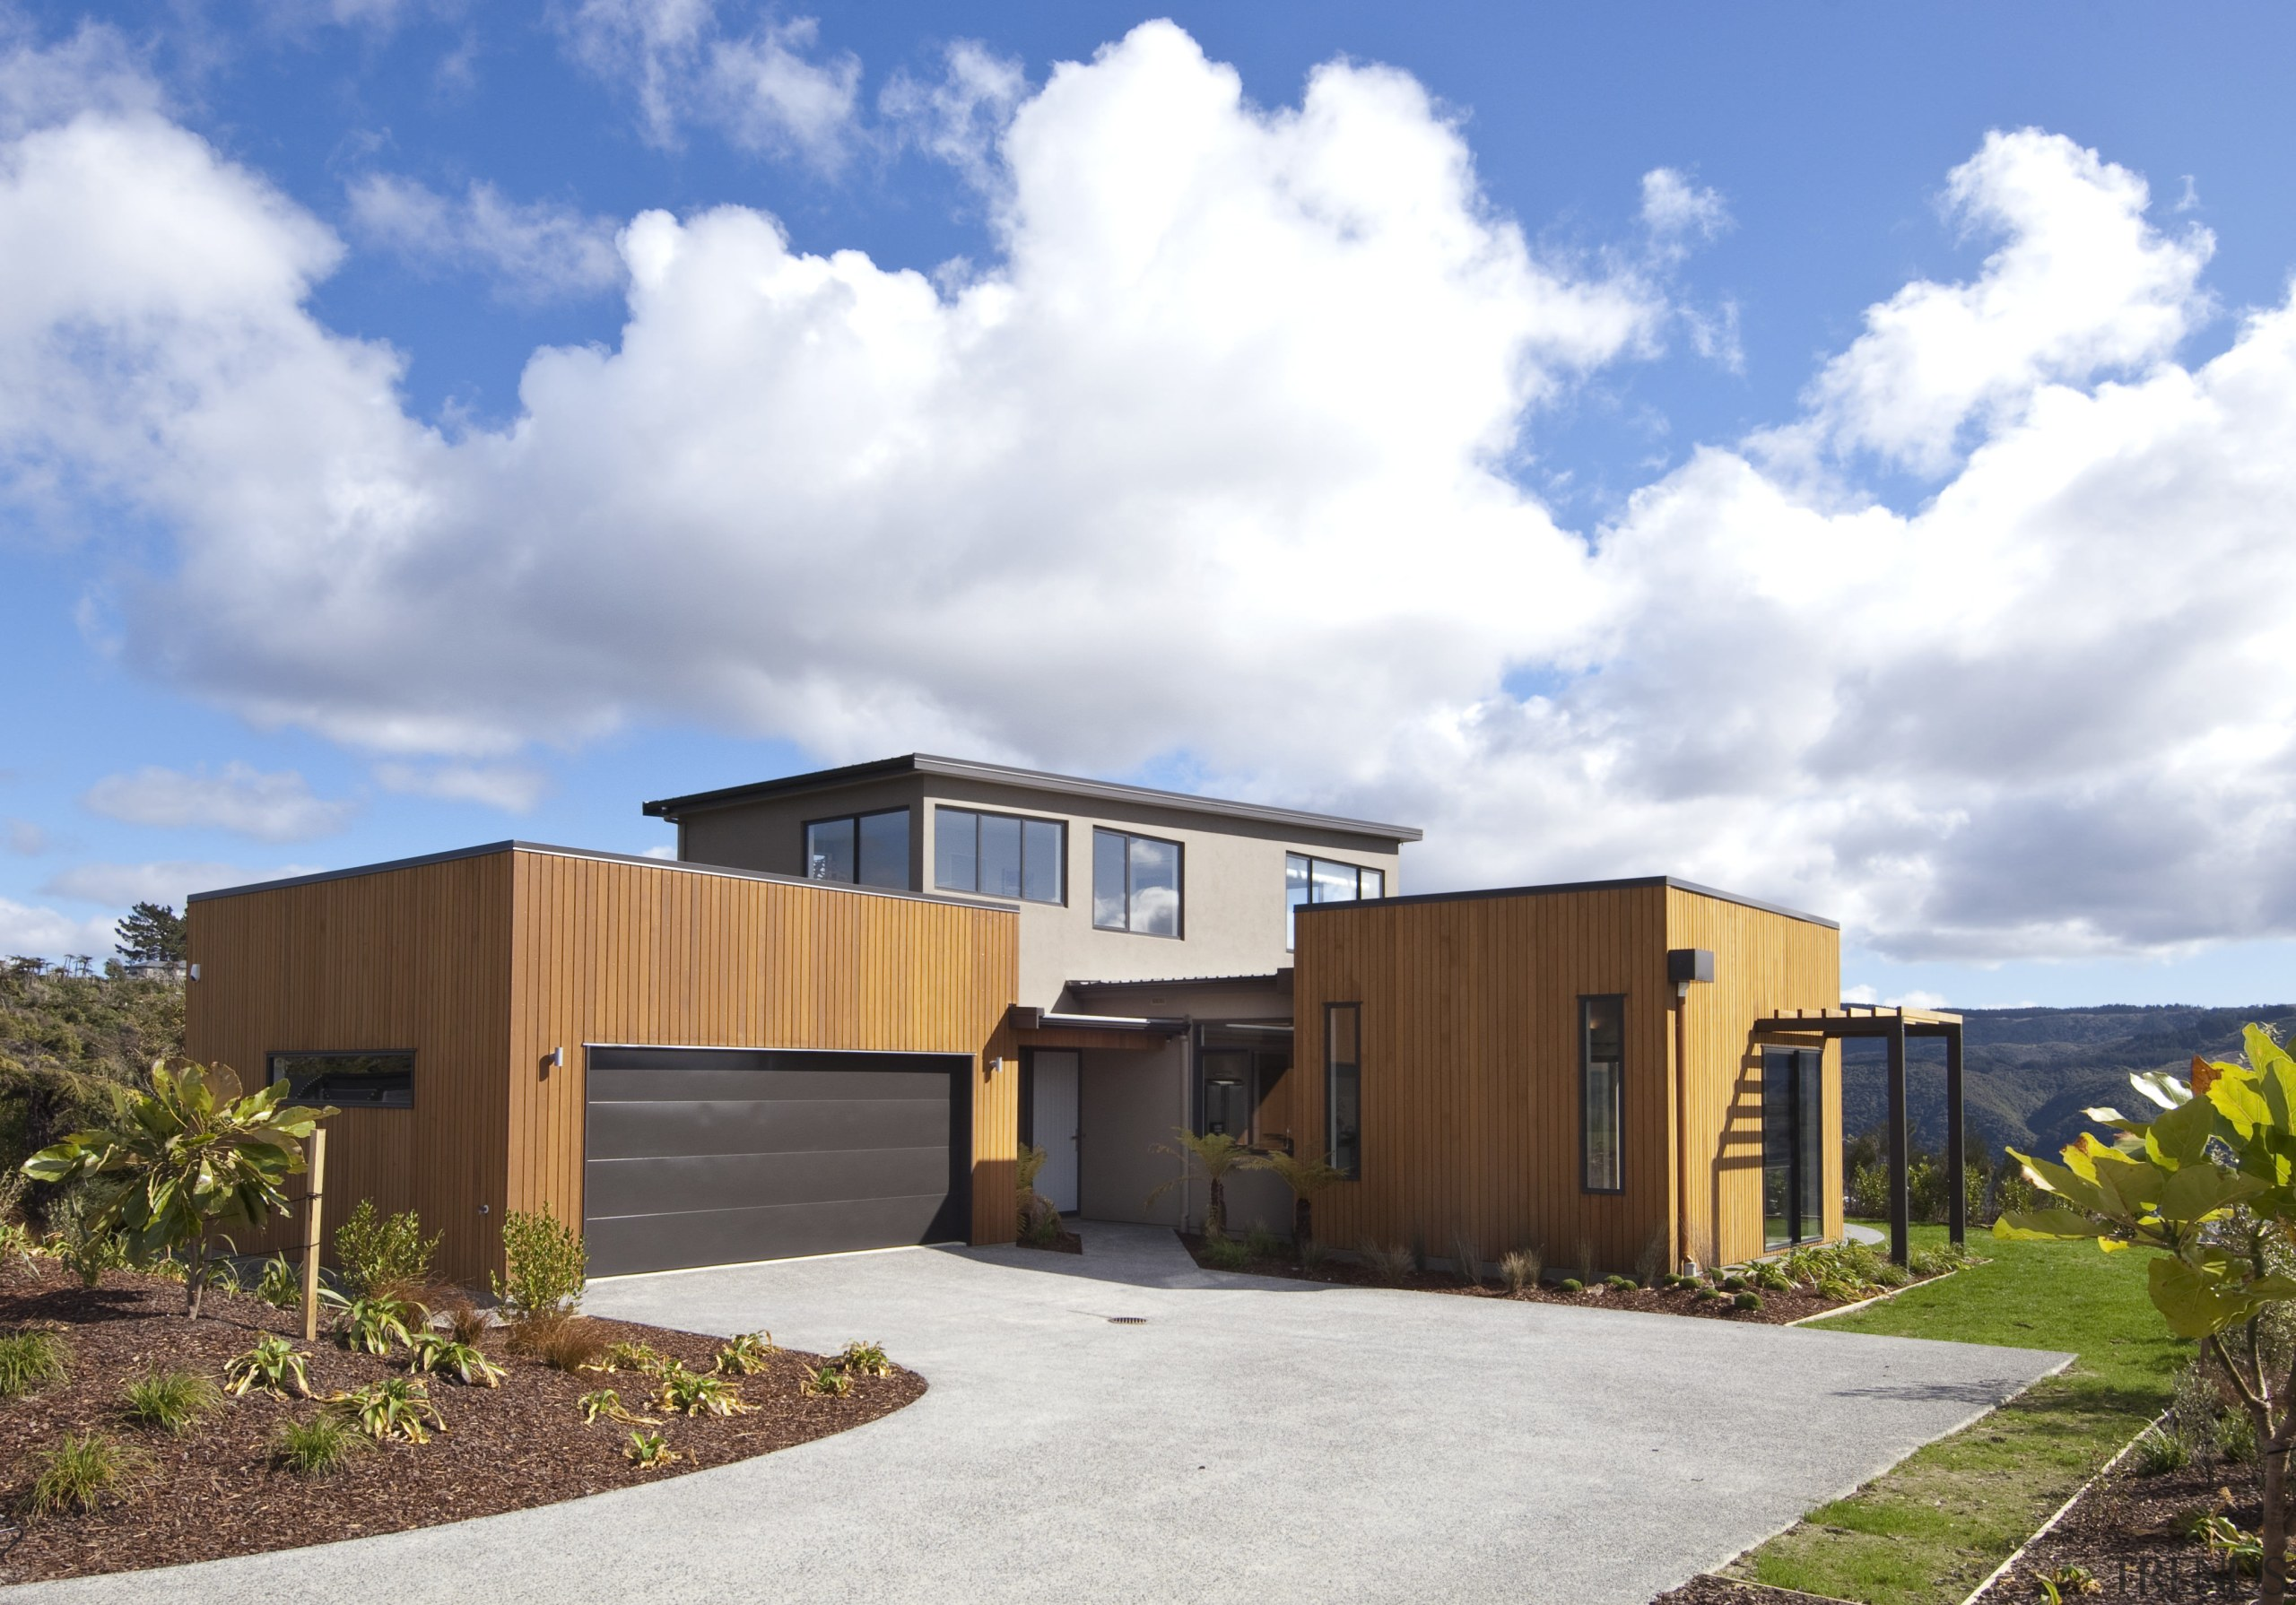 This Upper Hutt Show home was designed and architecture, elevation, facade, home, house, property, real estate, residential area, sky, white